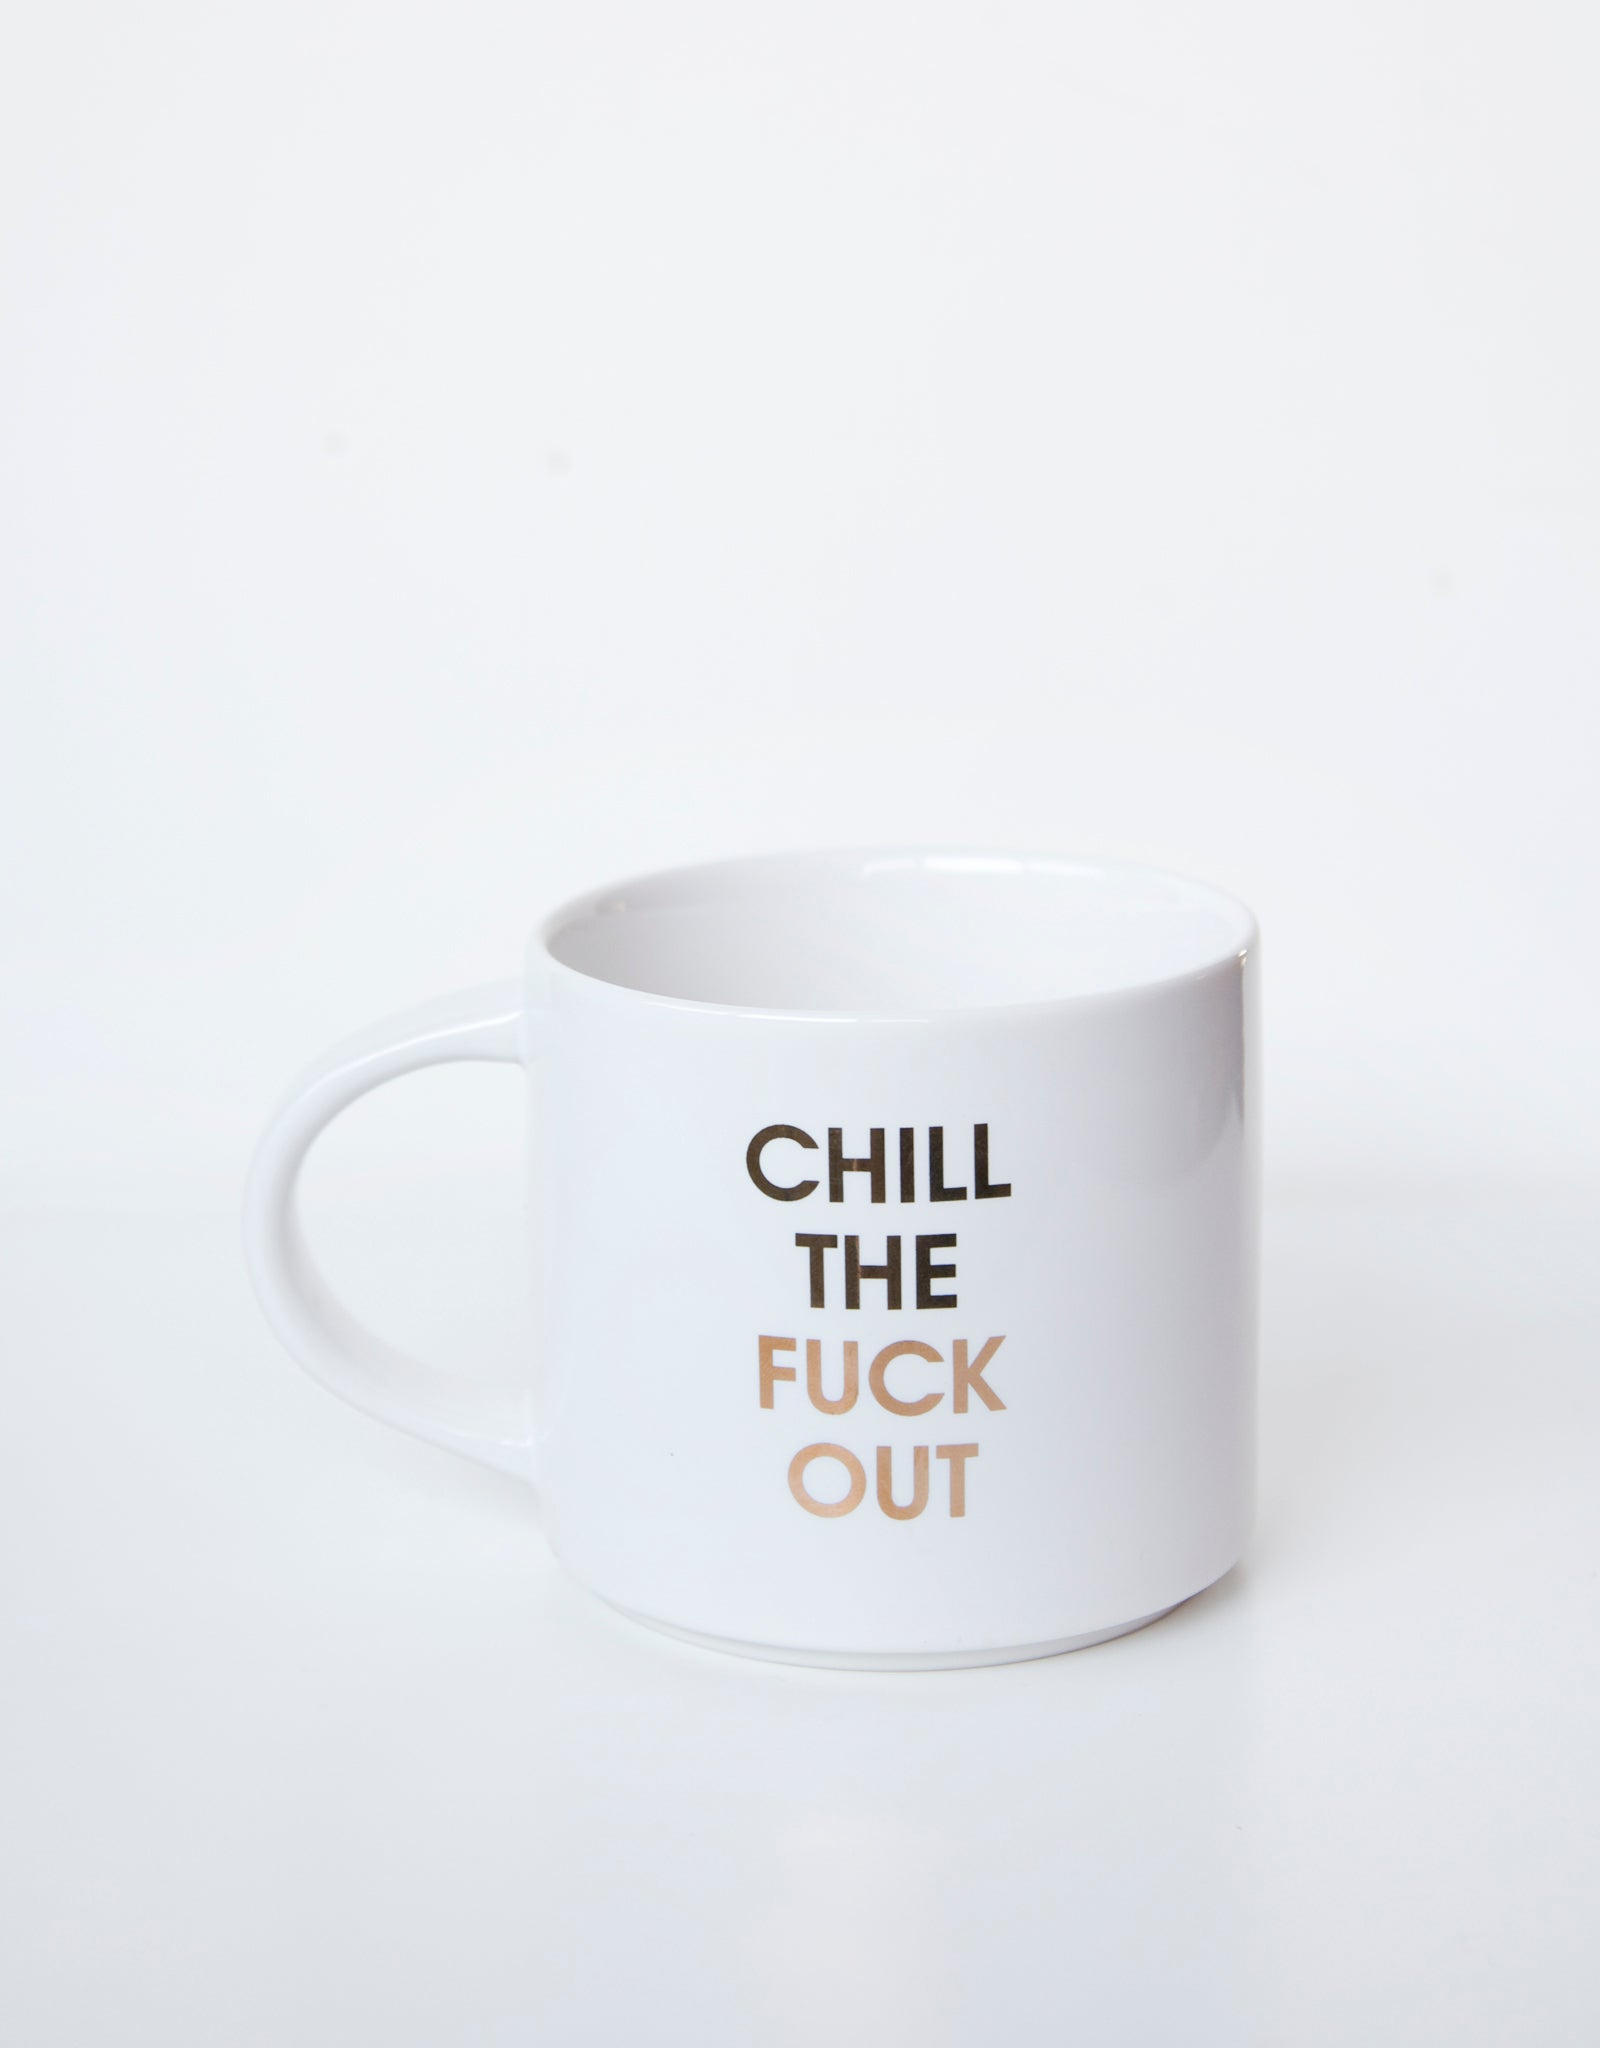 Chill The Fuck Out Mug